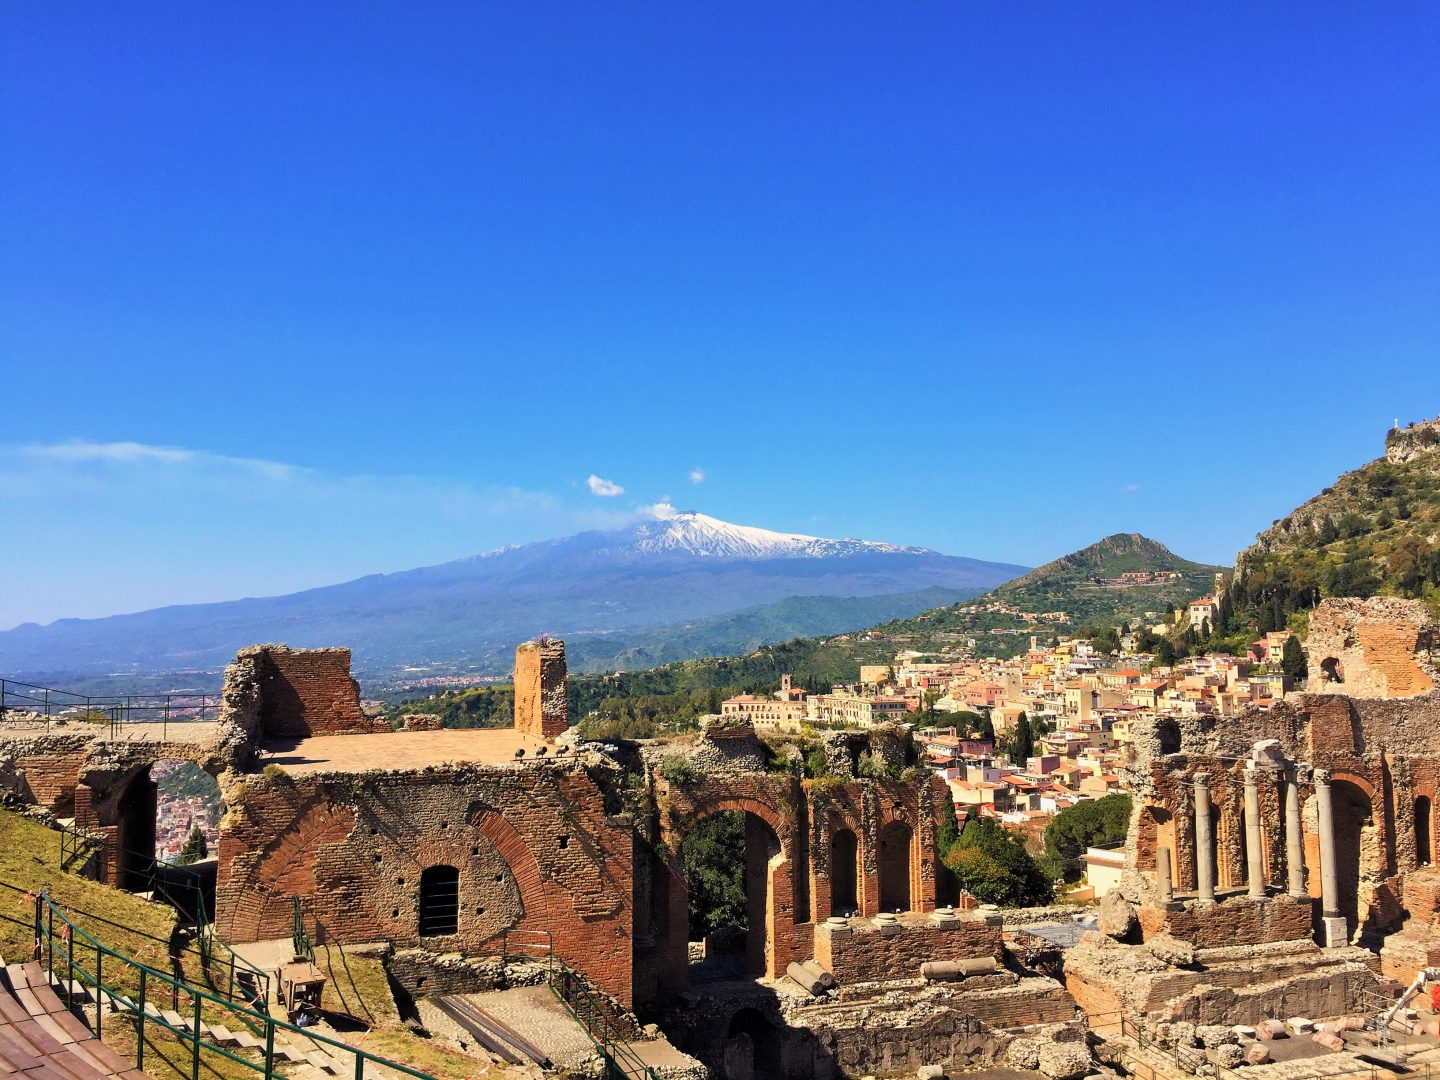 Taormina Greek amphitheatre with Mt Etna in the background, Sicily road trip